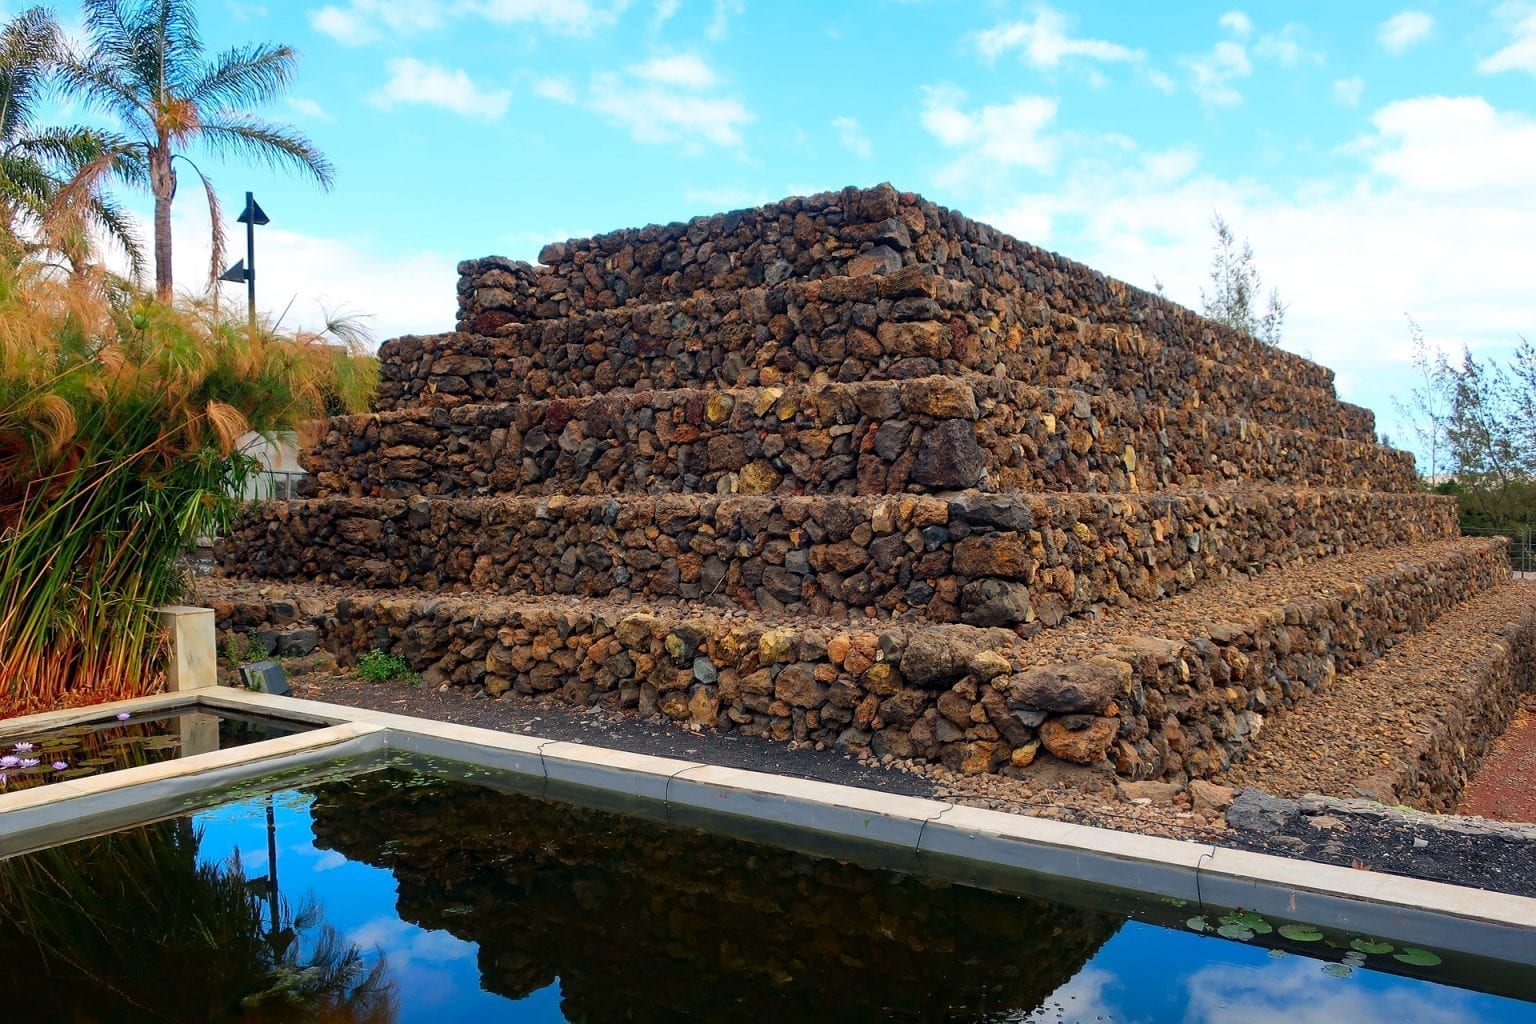 Many of the older locals claim that there were many more pyramids in Tenerife that were destroyed. Credit: Pixabay